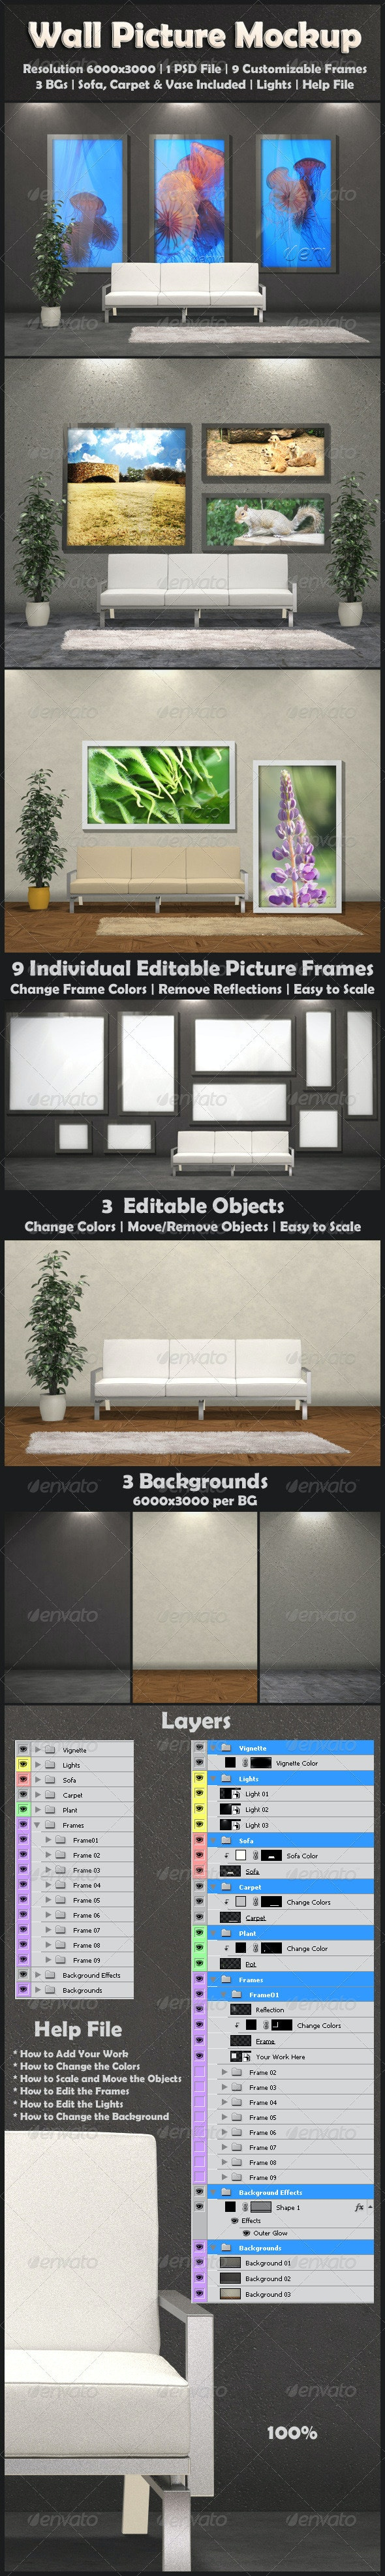 Wall Picture Mock-Up - Miscellaneous Displays